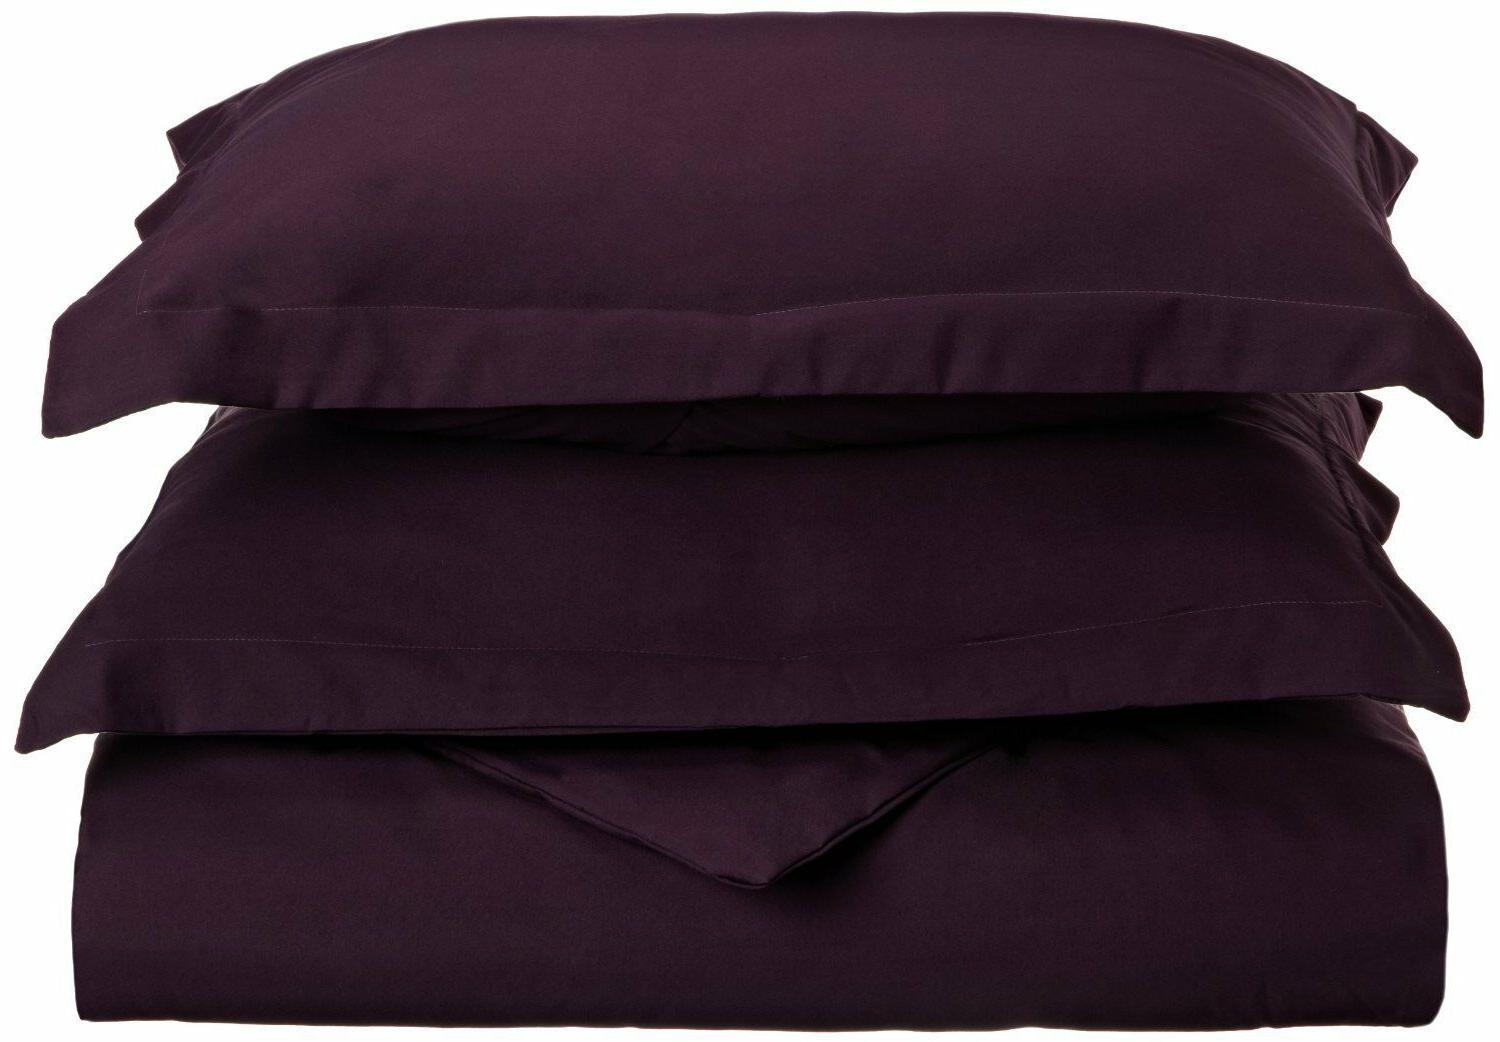 bedding duvet cover protects and covers your